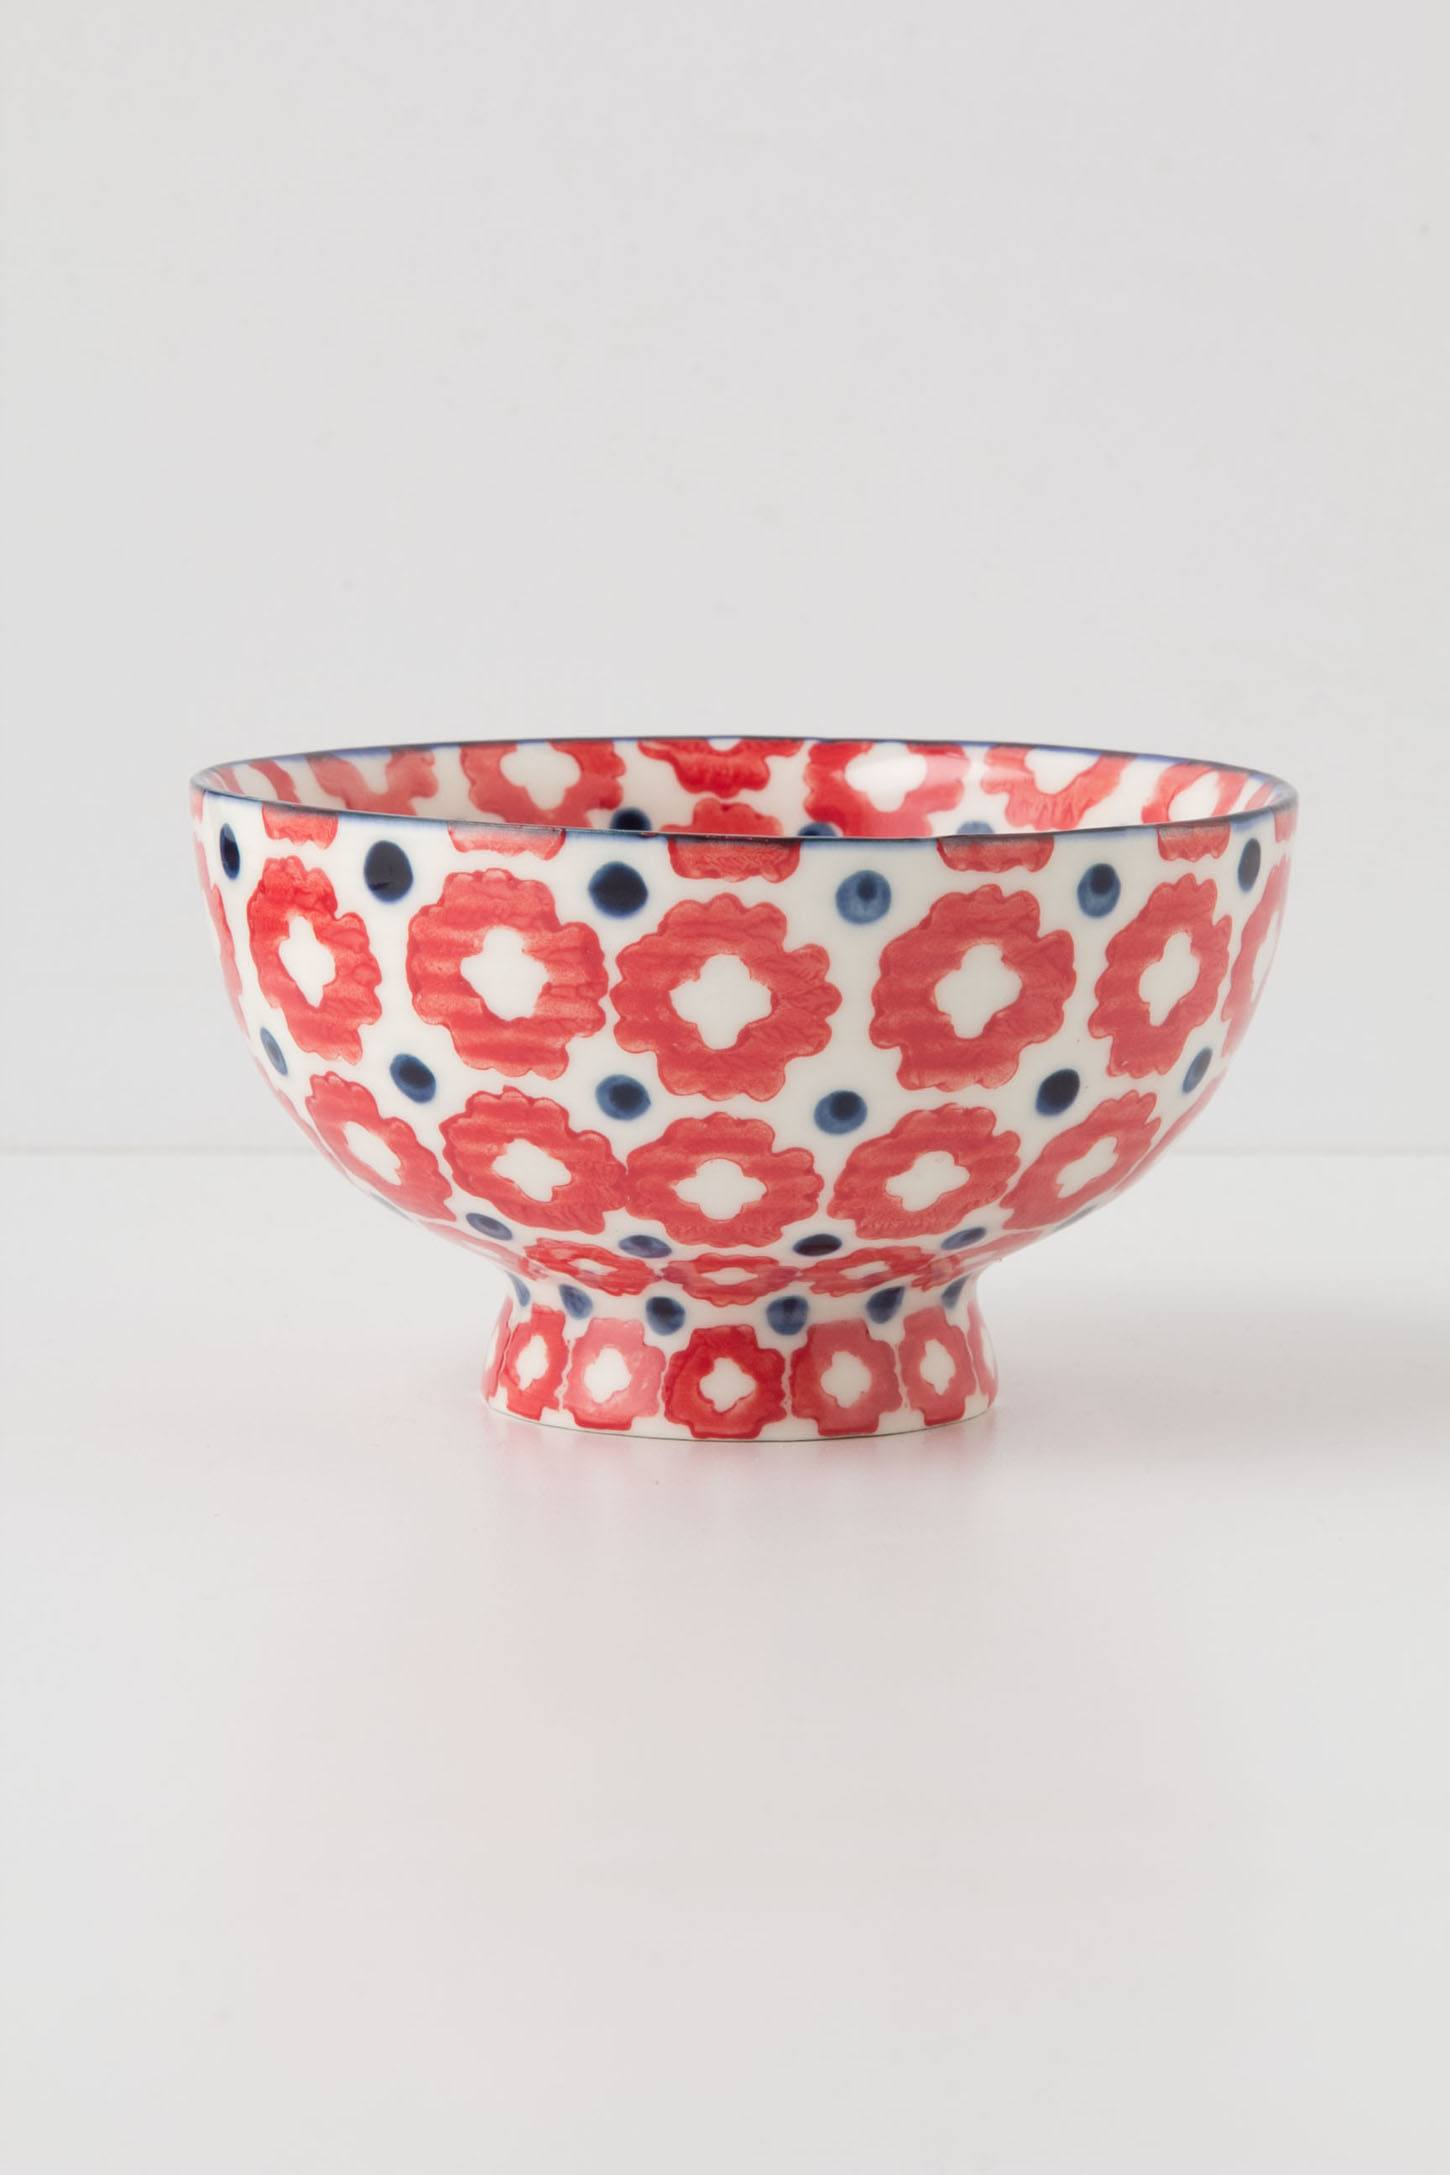 Tiled and Dotted Bowl